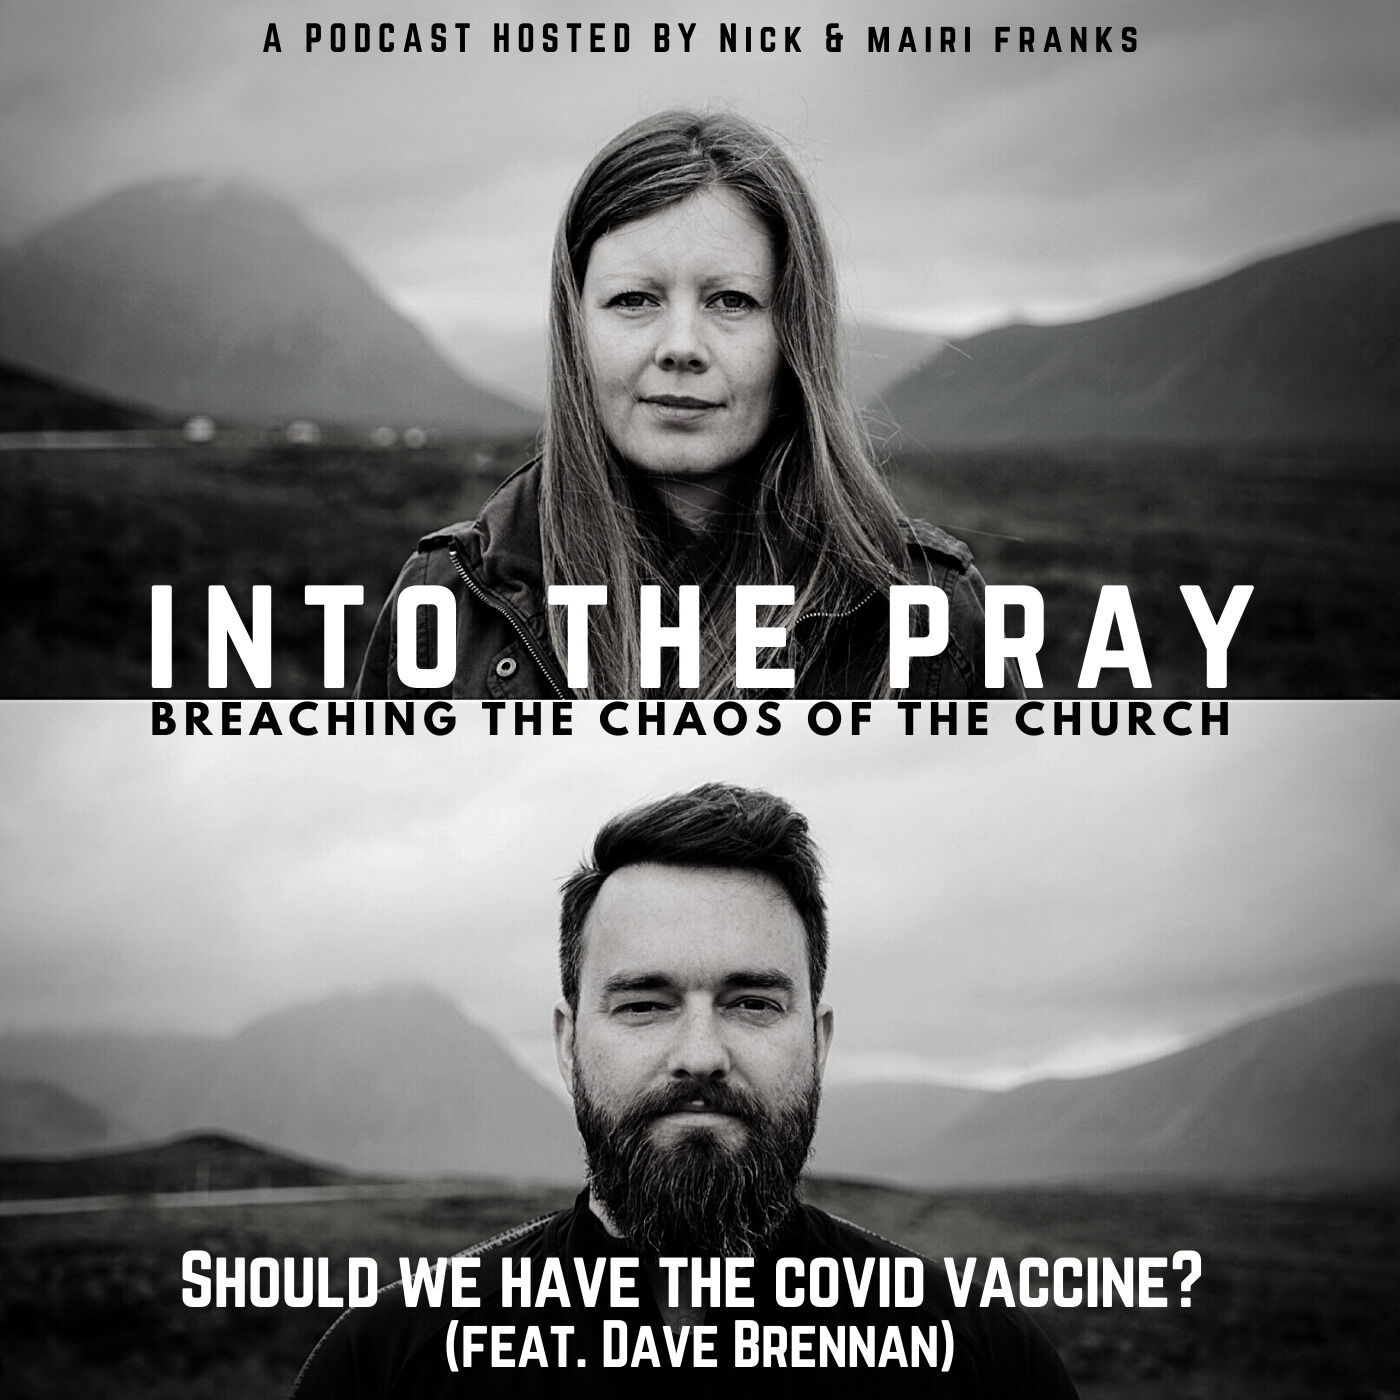 Should We Have the COVID Vaccine? (feat. Dave Brennan)